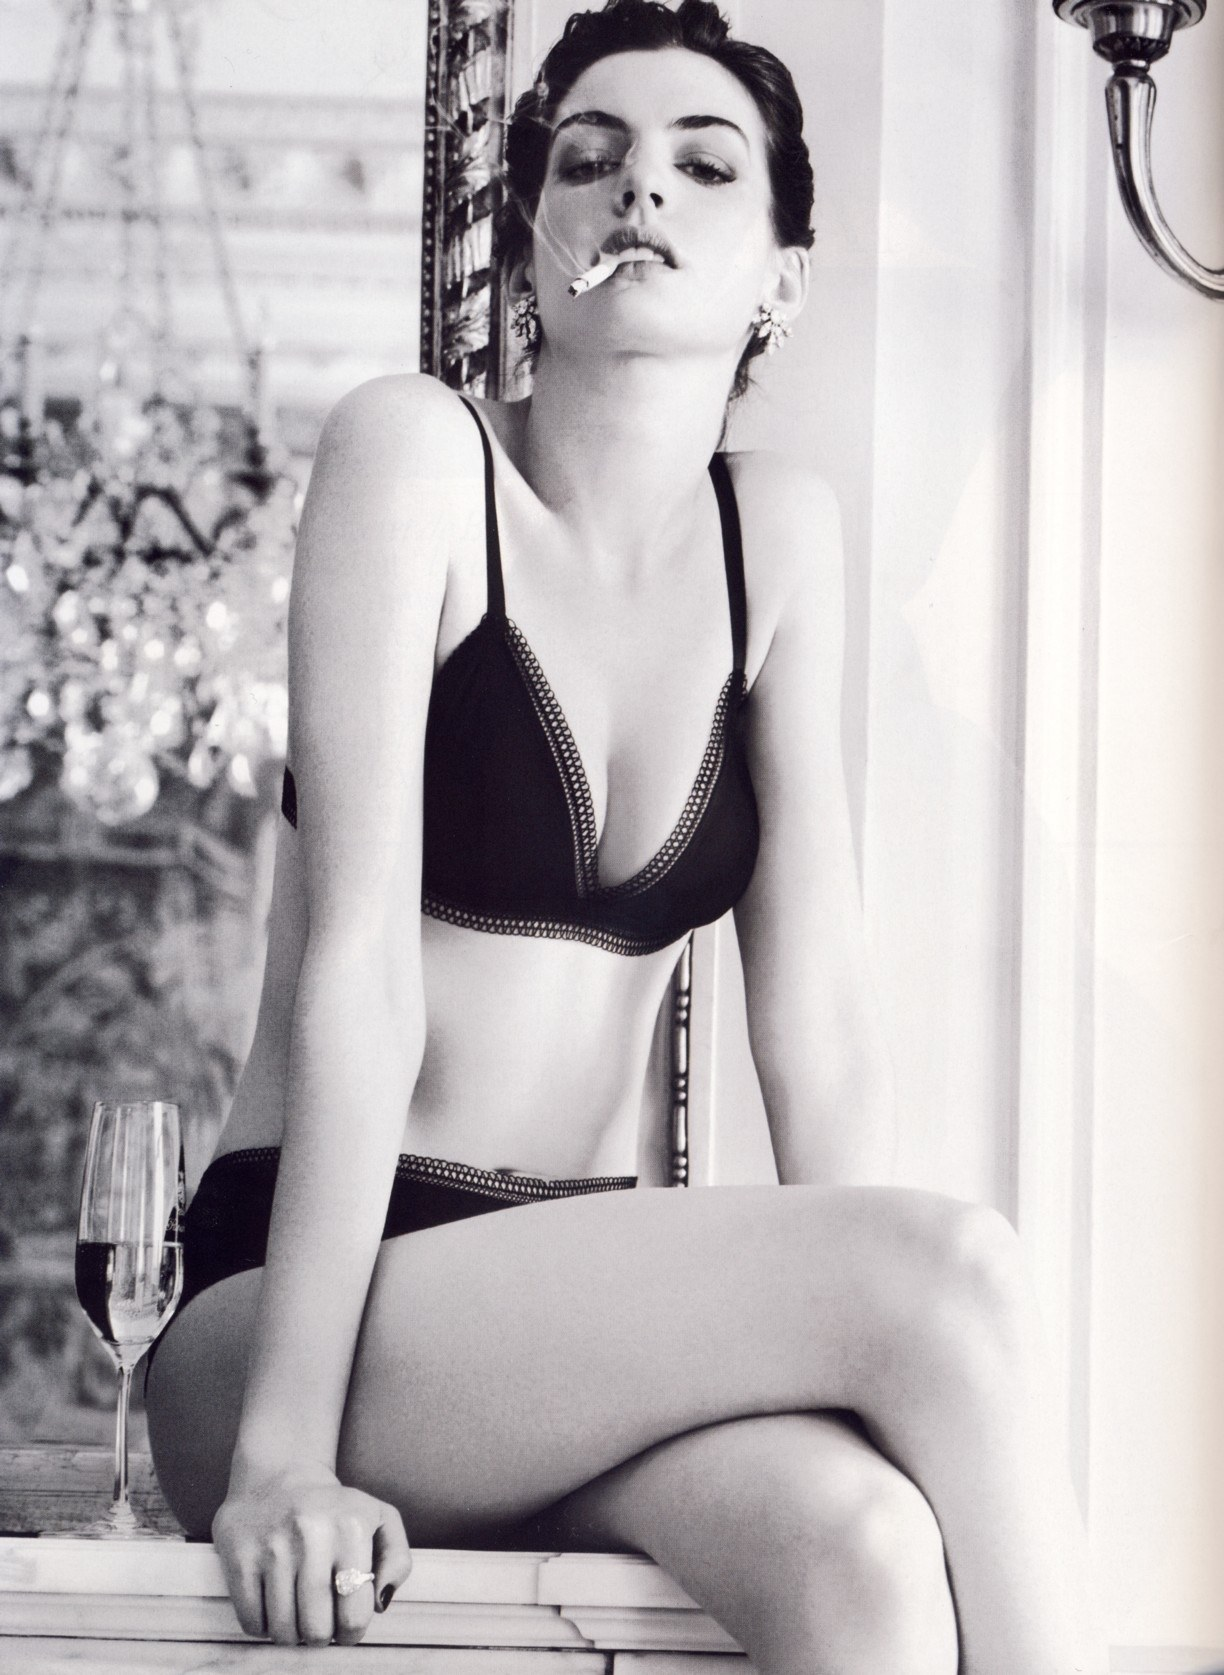 Anne Hathaway Sexy Cleavage Photos in Lingerie   Glamourous Photoshoot Images